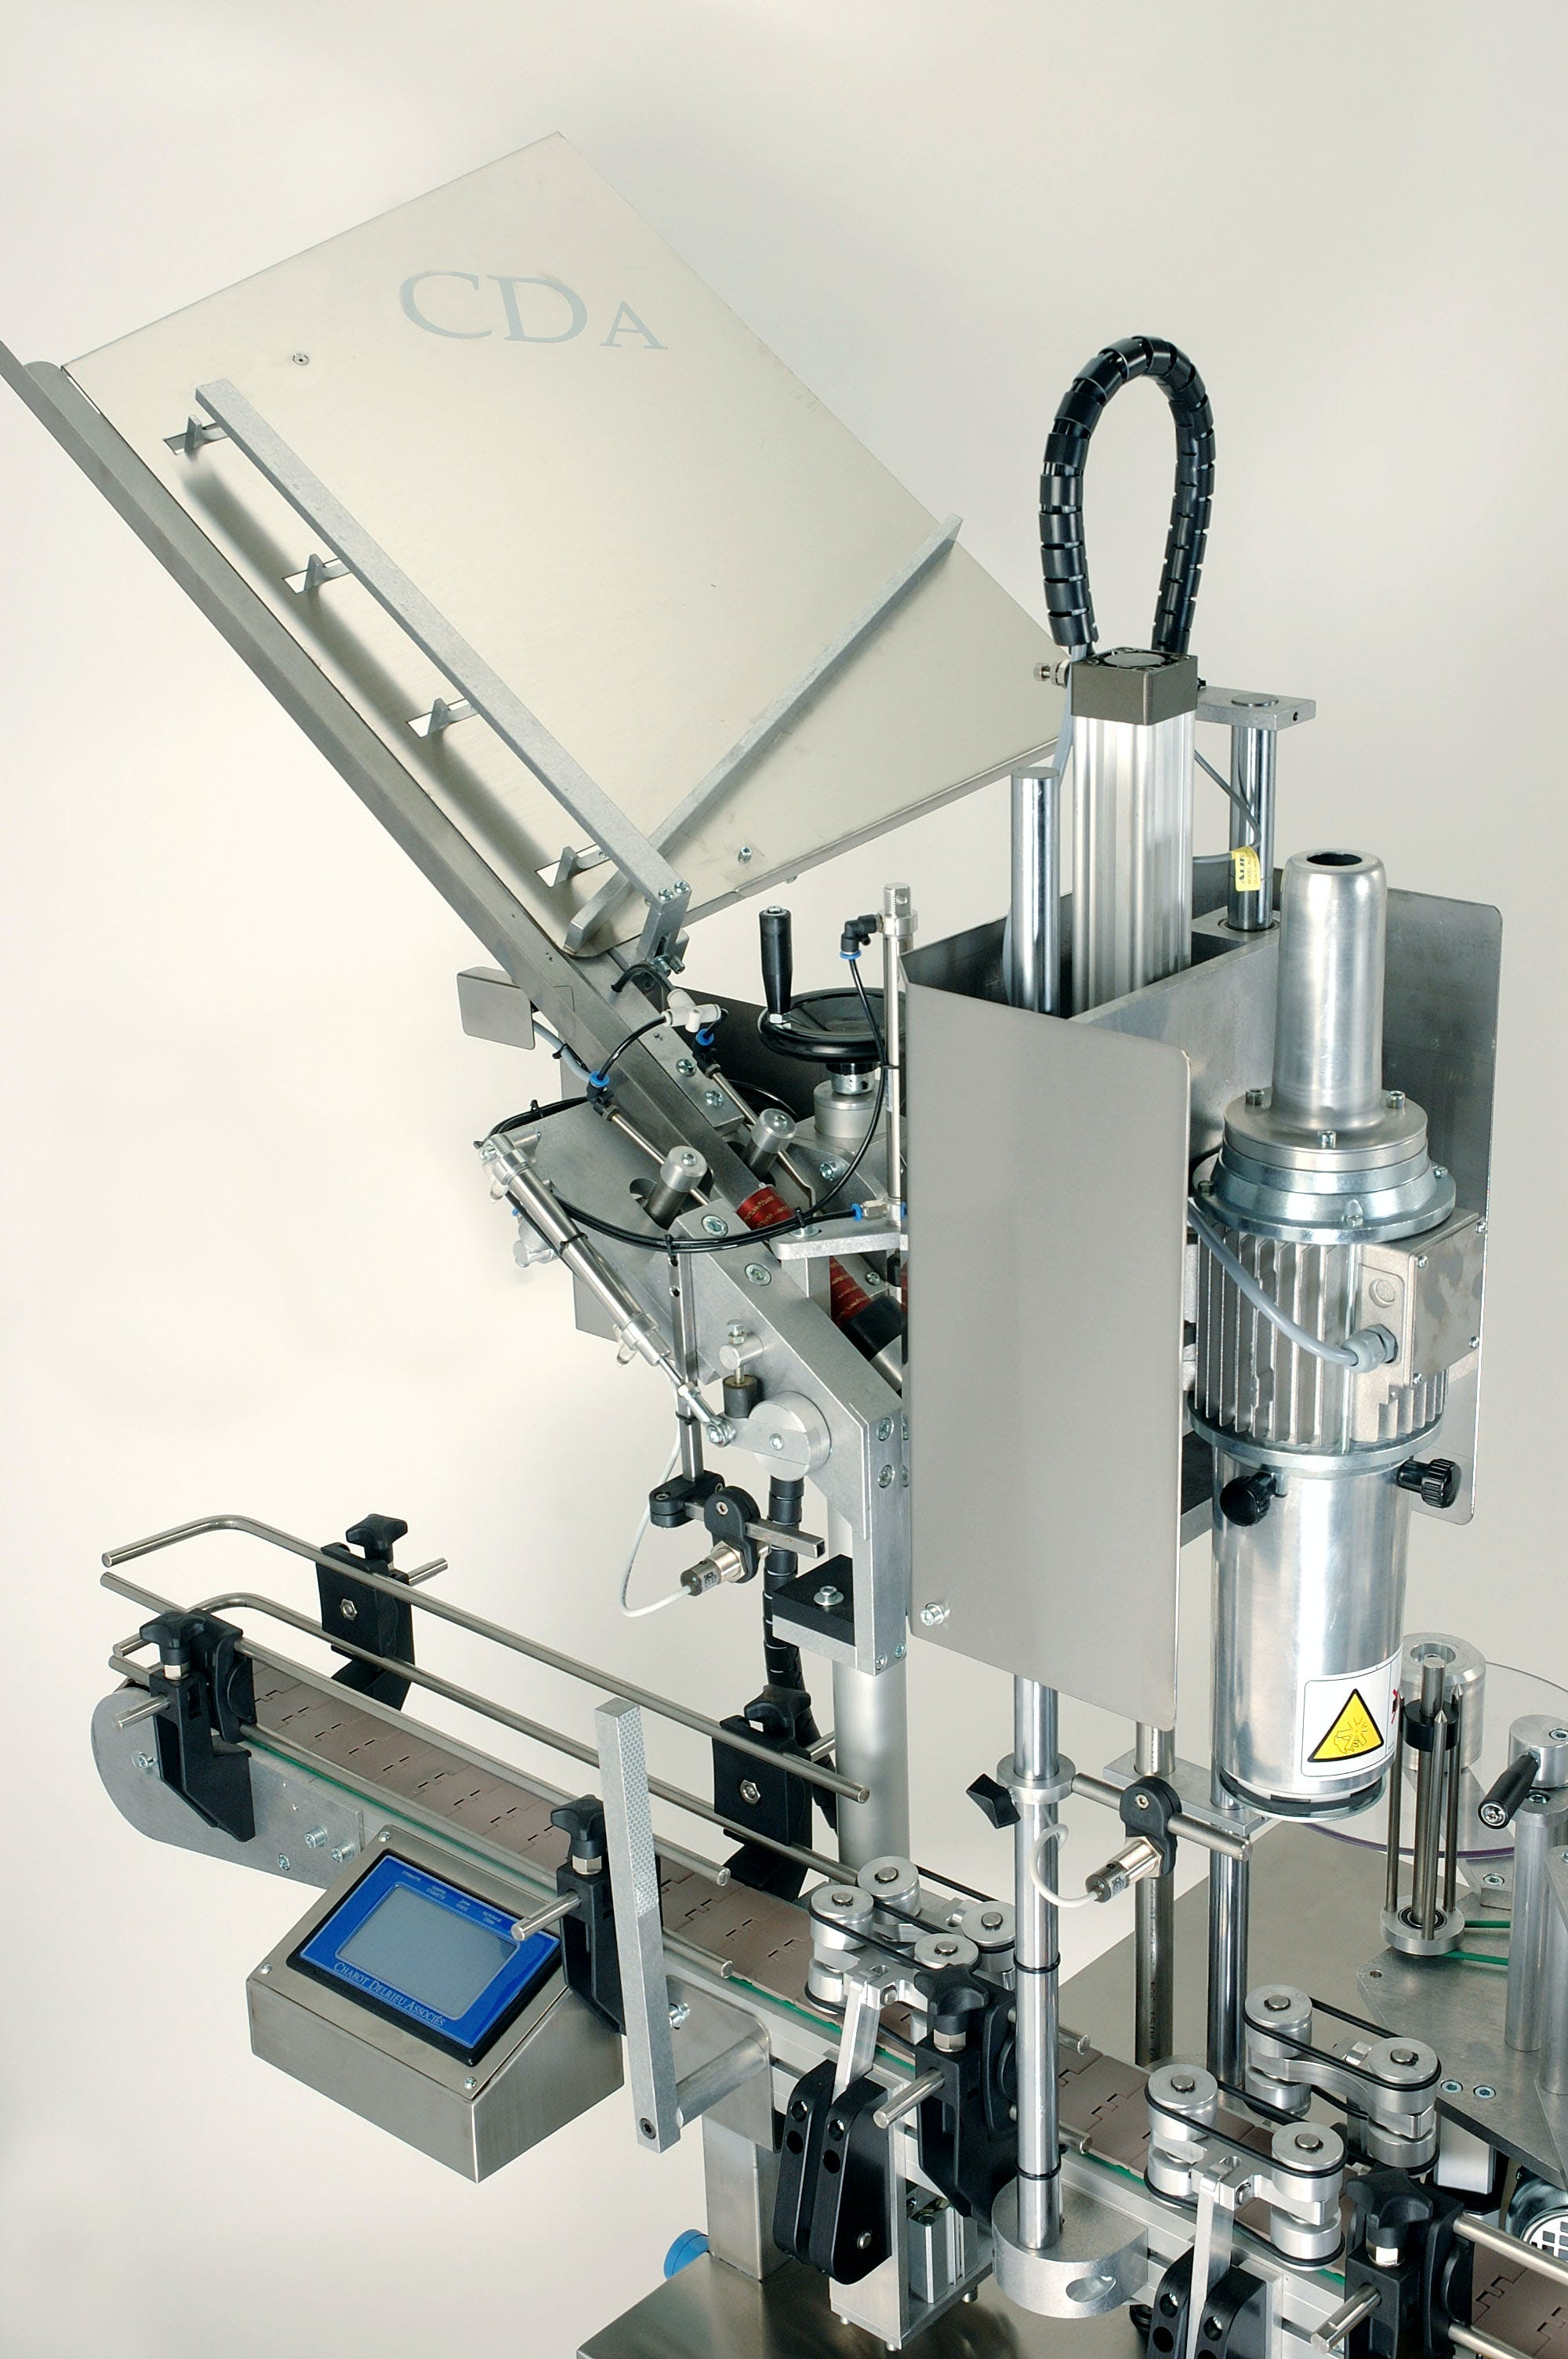 Cap System Packaging equipment sold by CDA USA Inc,